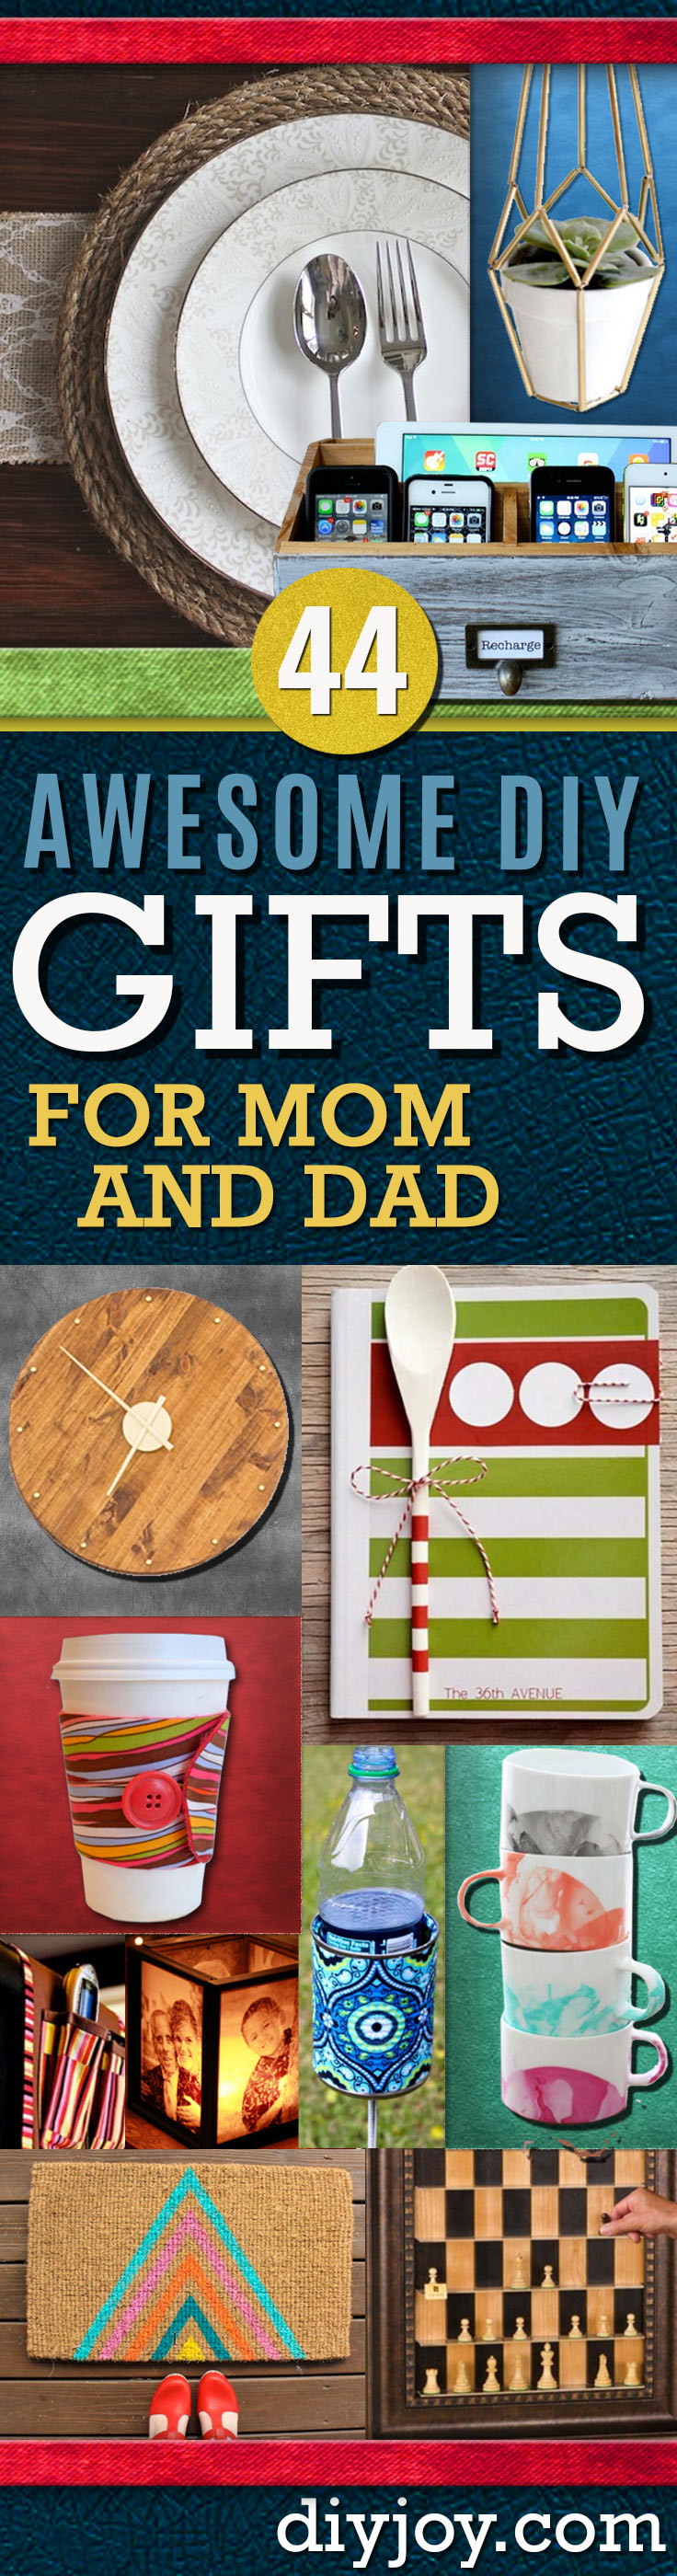 DIY Christmas Presents For Mom  Awesome DIY Gift Ideas Mom and Dad Will Love